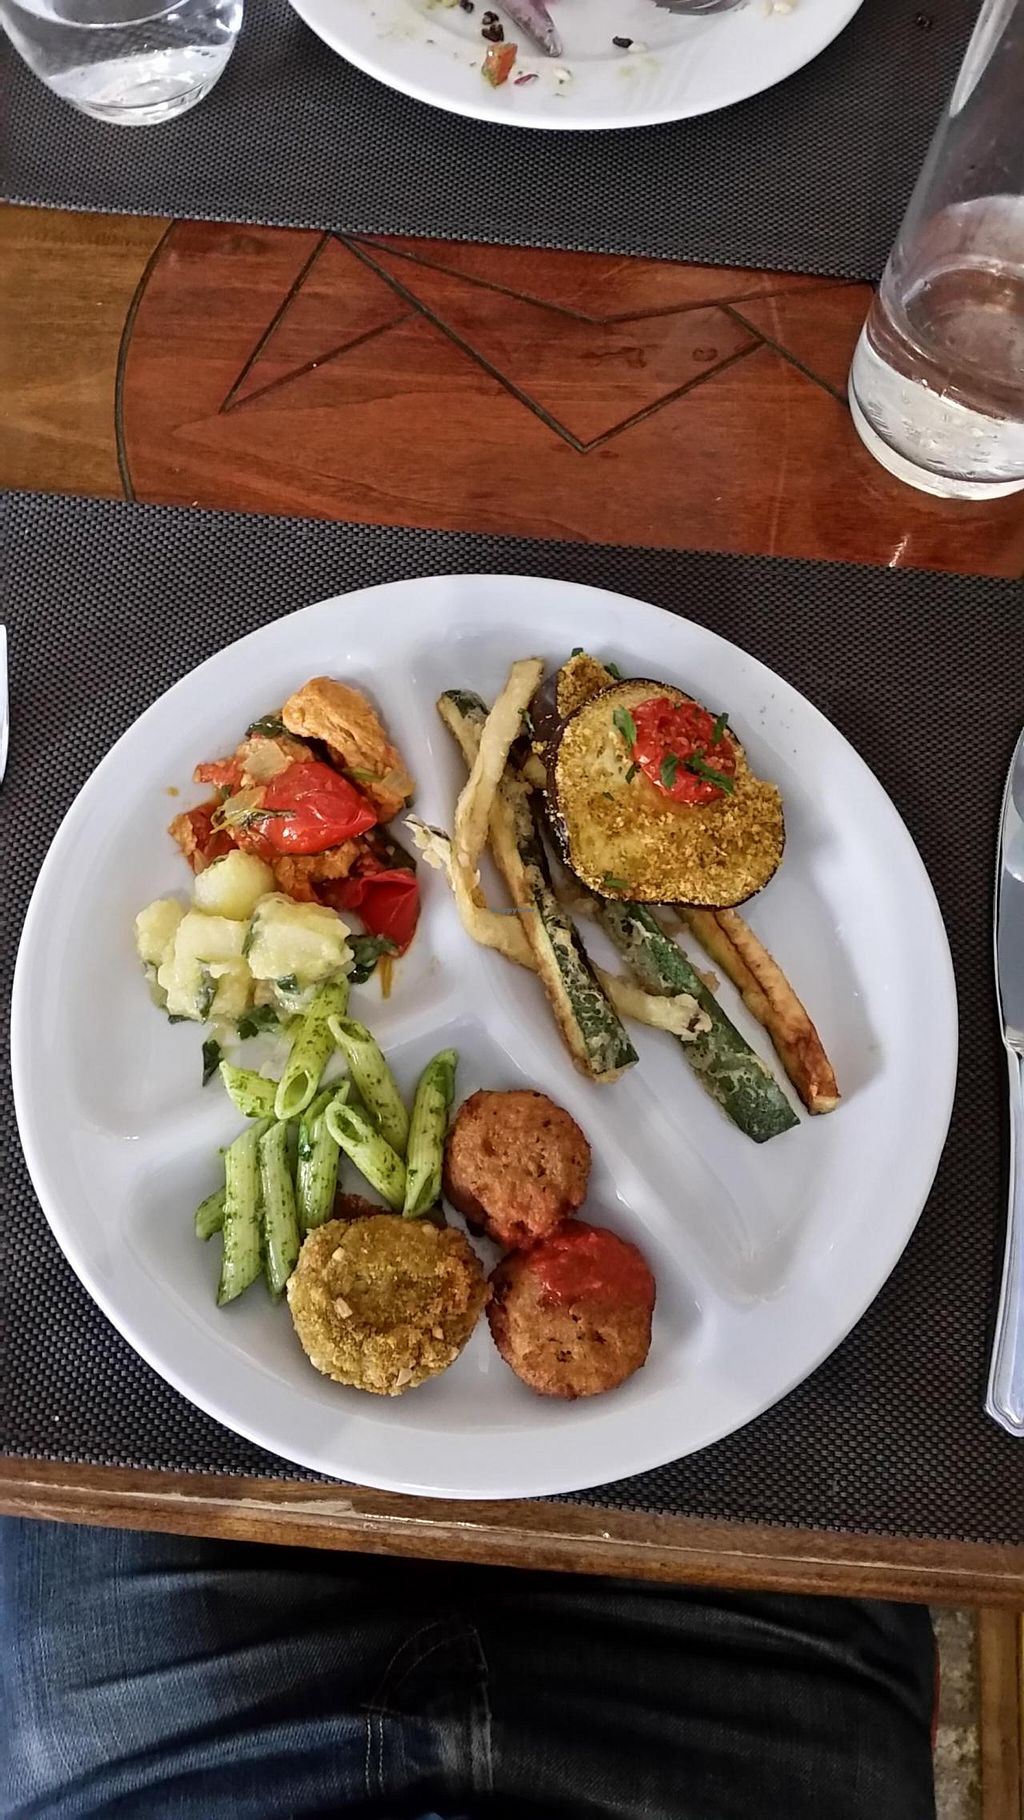 """Photo of Il Margutta Veggy Food and Art  by <a href=""""/members/profile/veganlondon"""">veganlondon</a> <br/>Meal at Il Margutta <br/> June 25, 2015  - <a href='/contact/abuse/image/1002/107219'>Report</a>"""